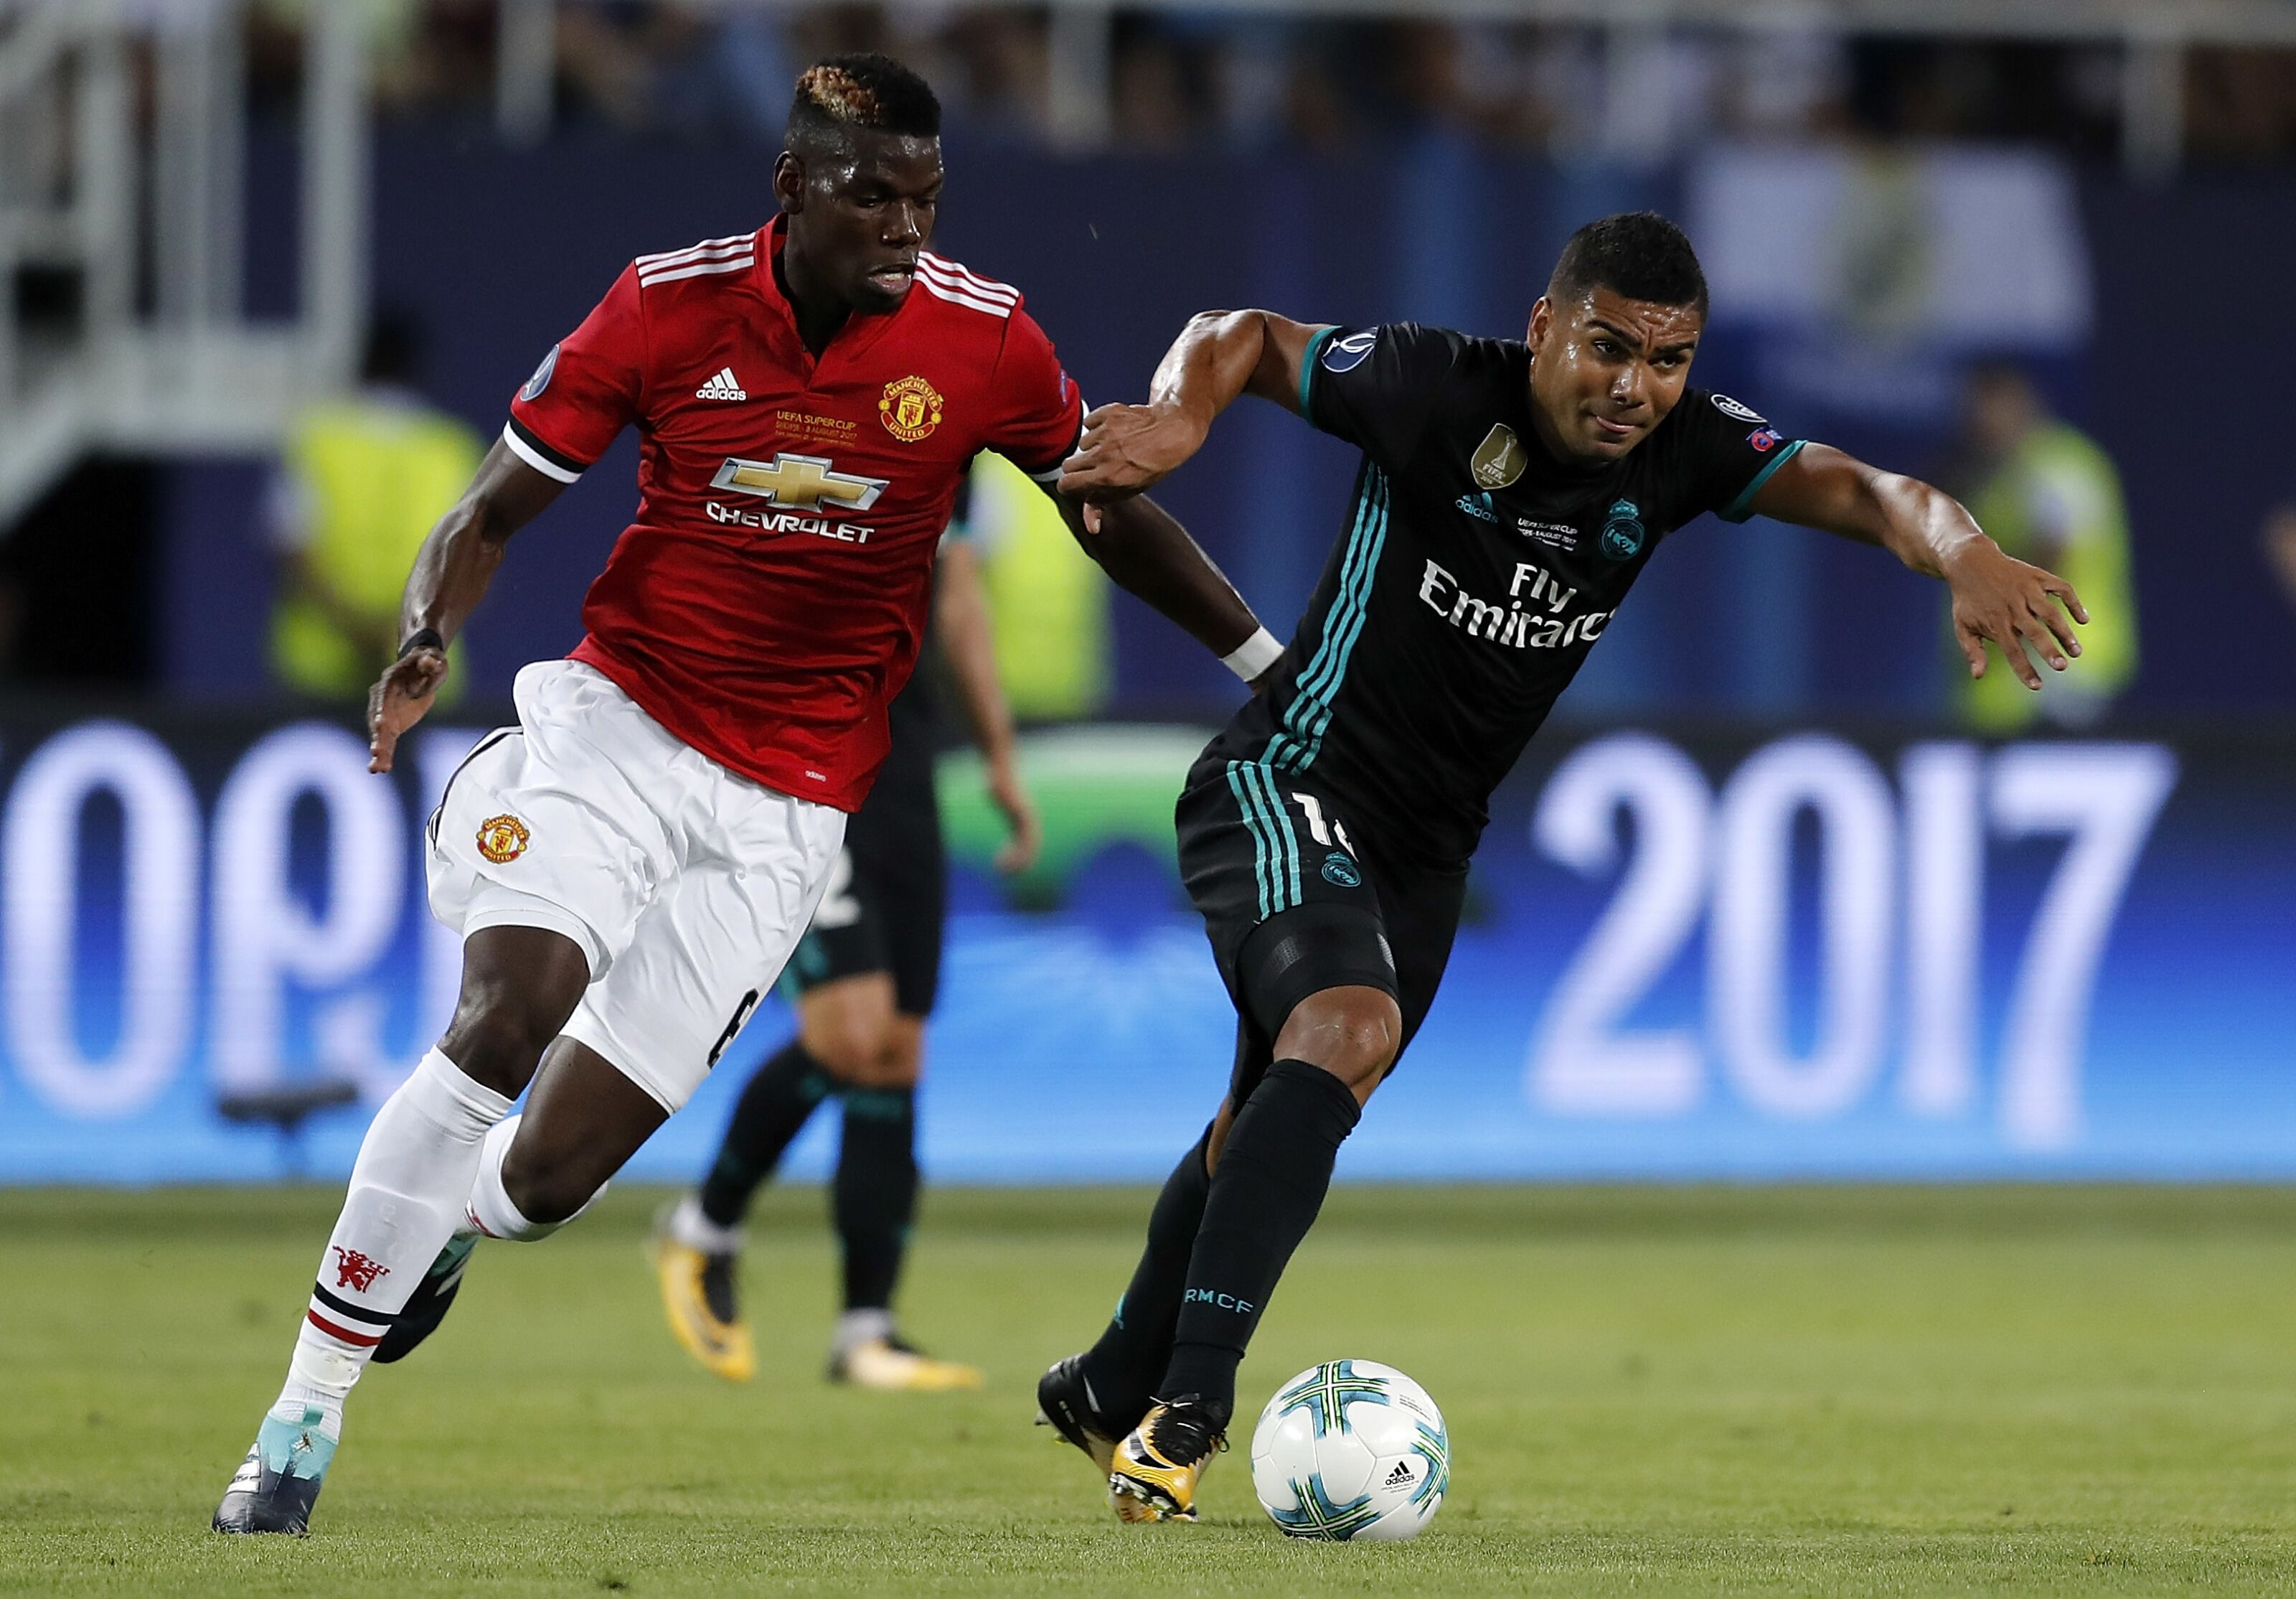 Paul Pogba: Real Madrid's next midfield great or unnecessary risk?